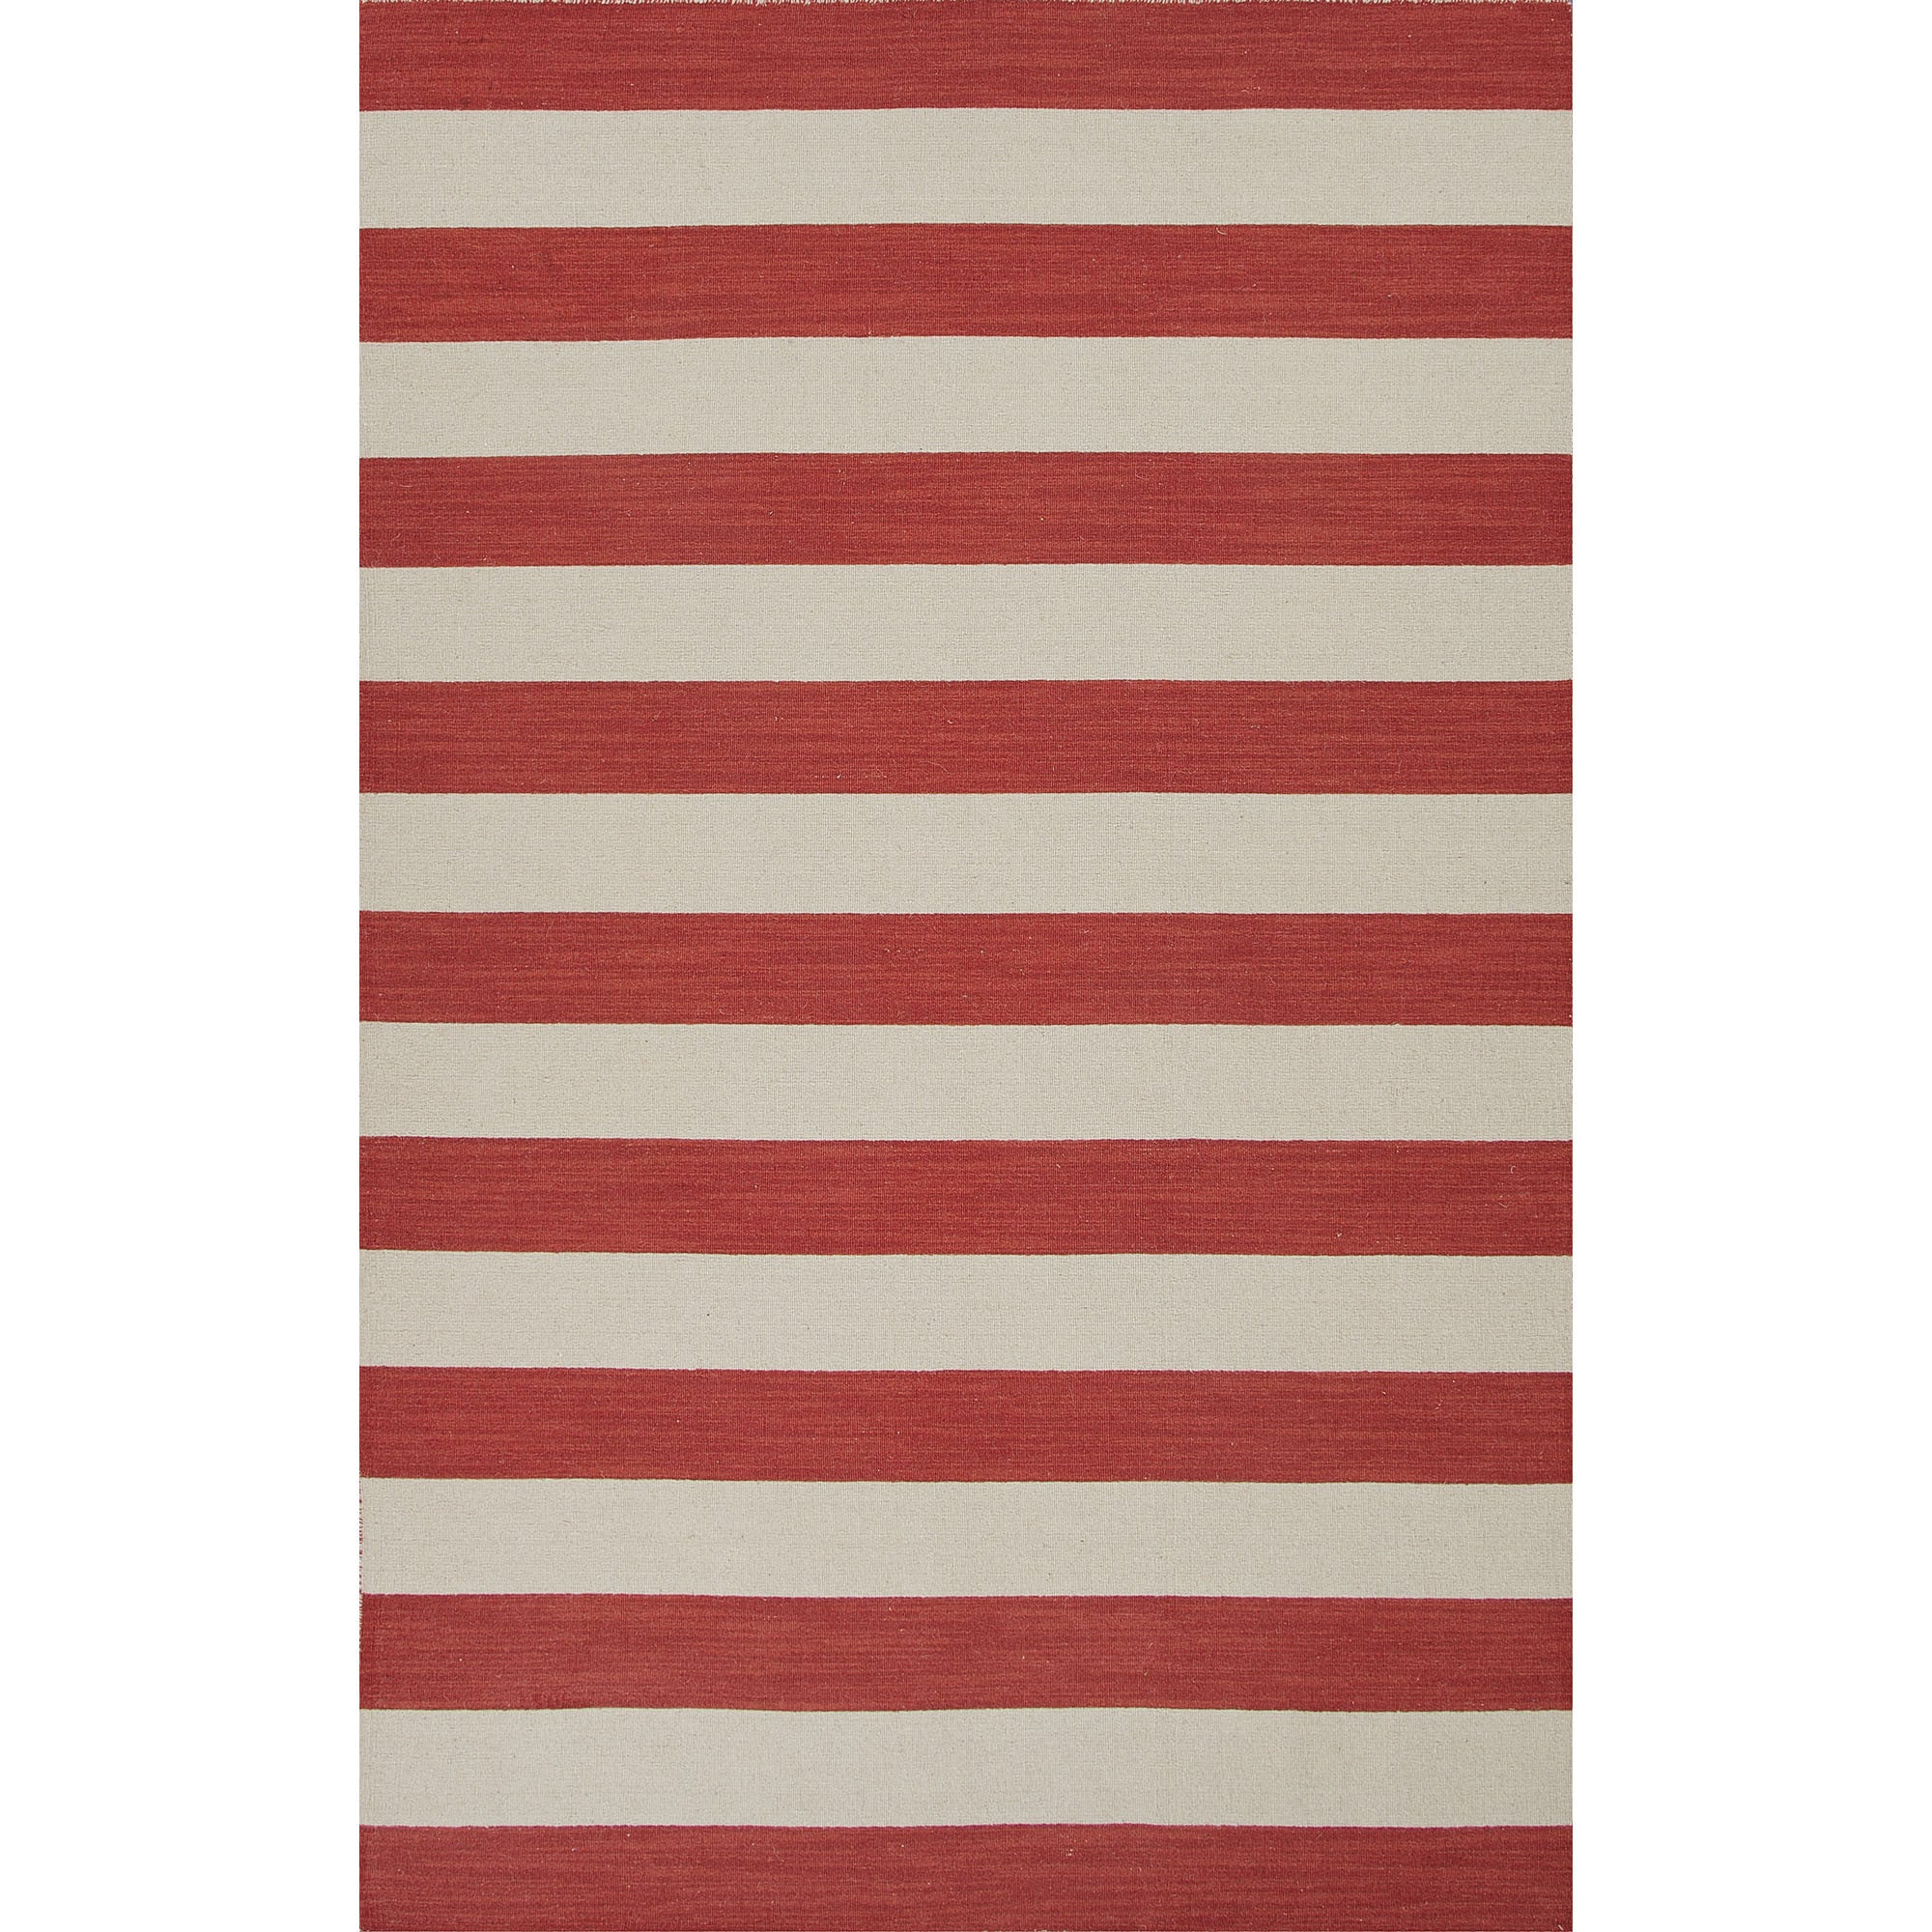 Jaipur Rugs FlatWeave Stripe Pattern Red/Ivory Wool Area Rug PV49 (Rec u2013 RugMethod